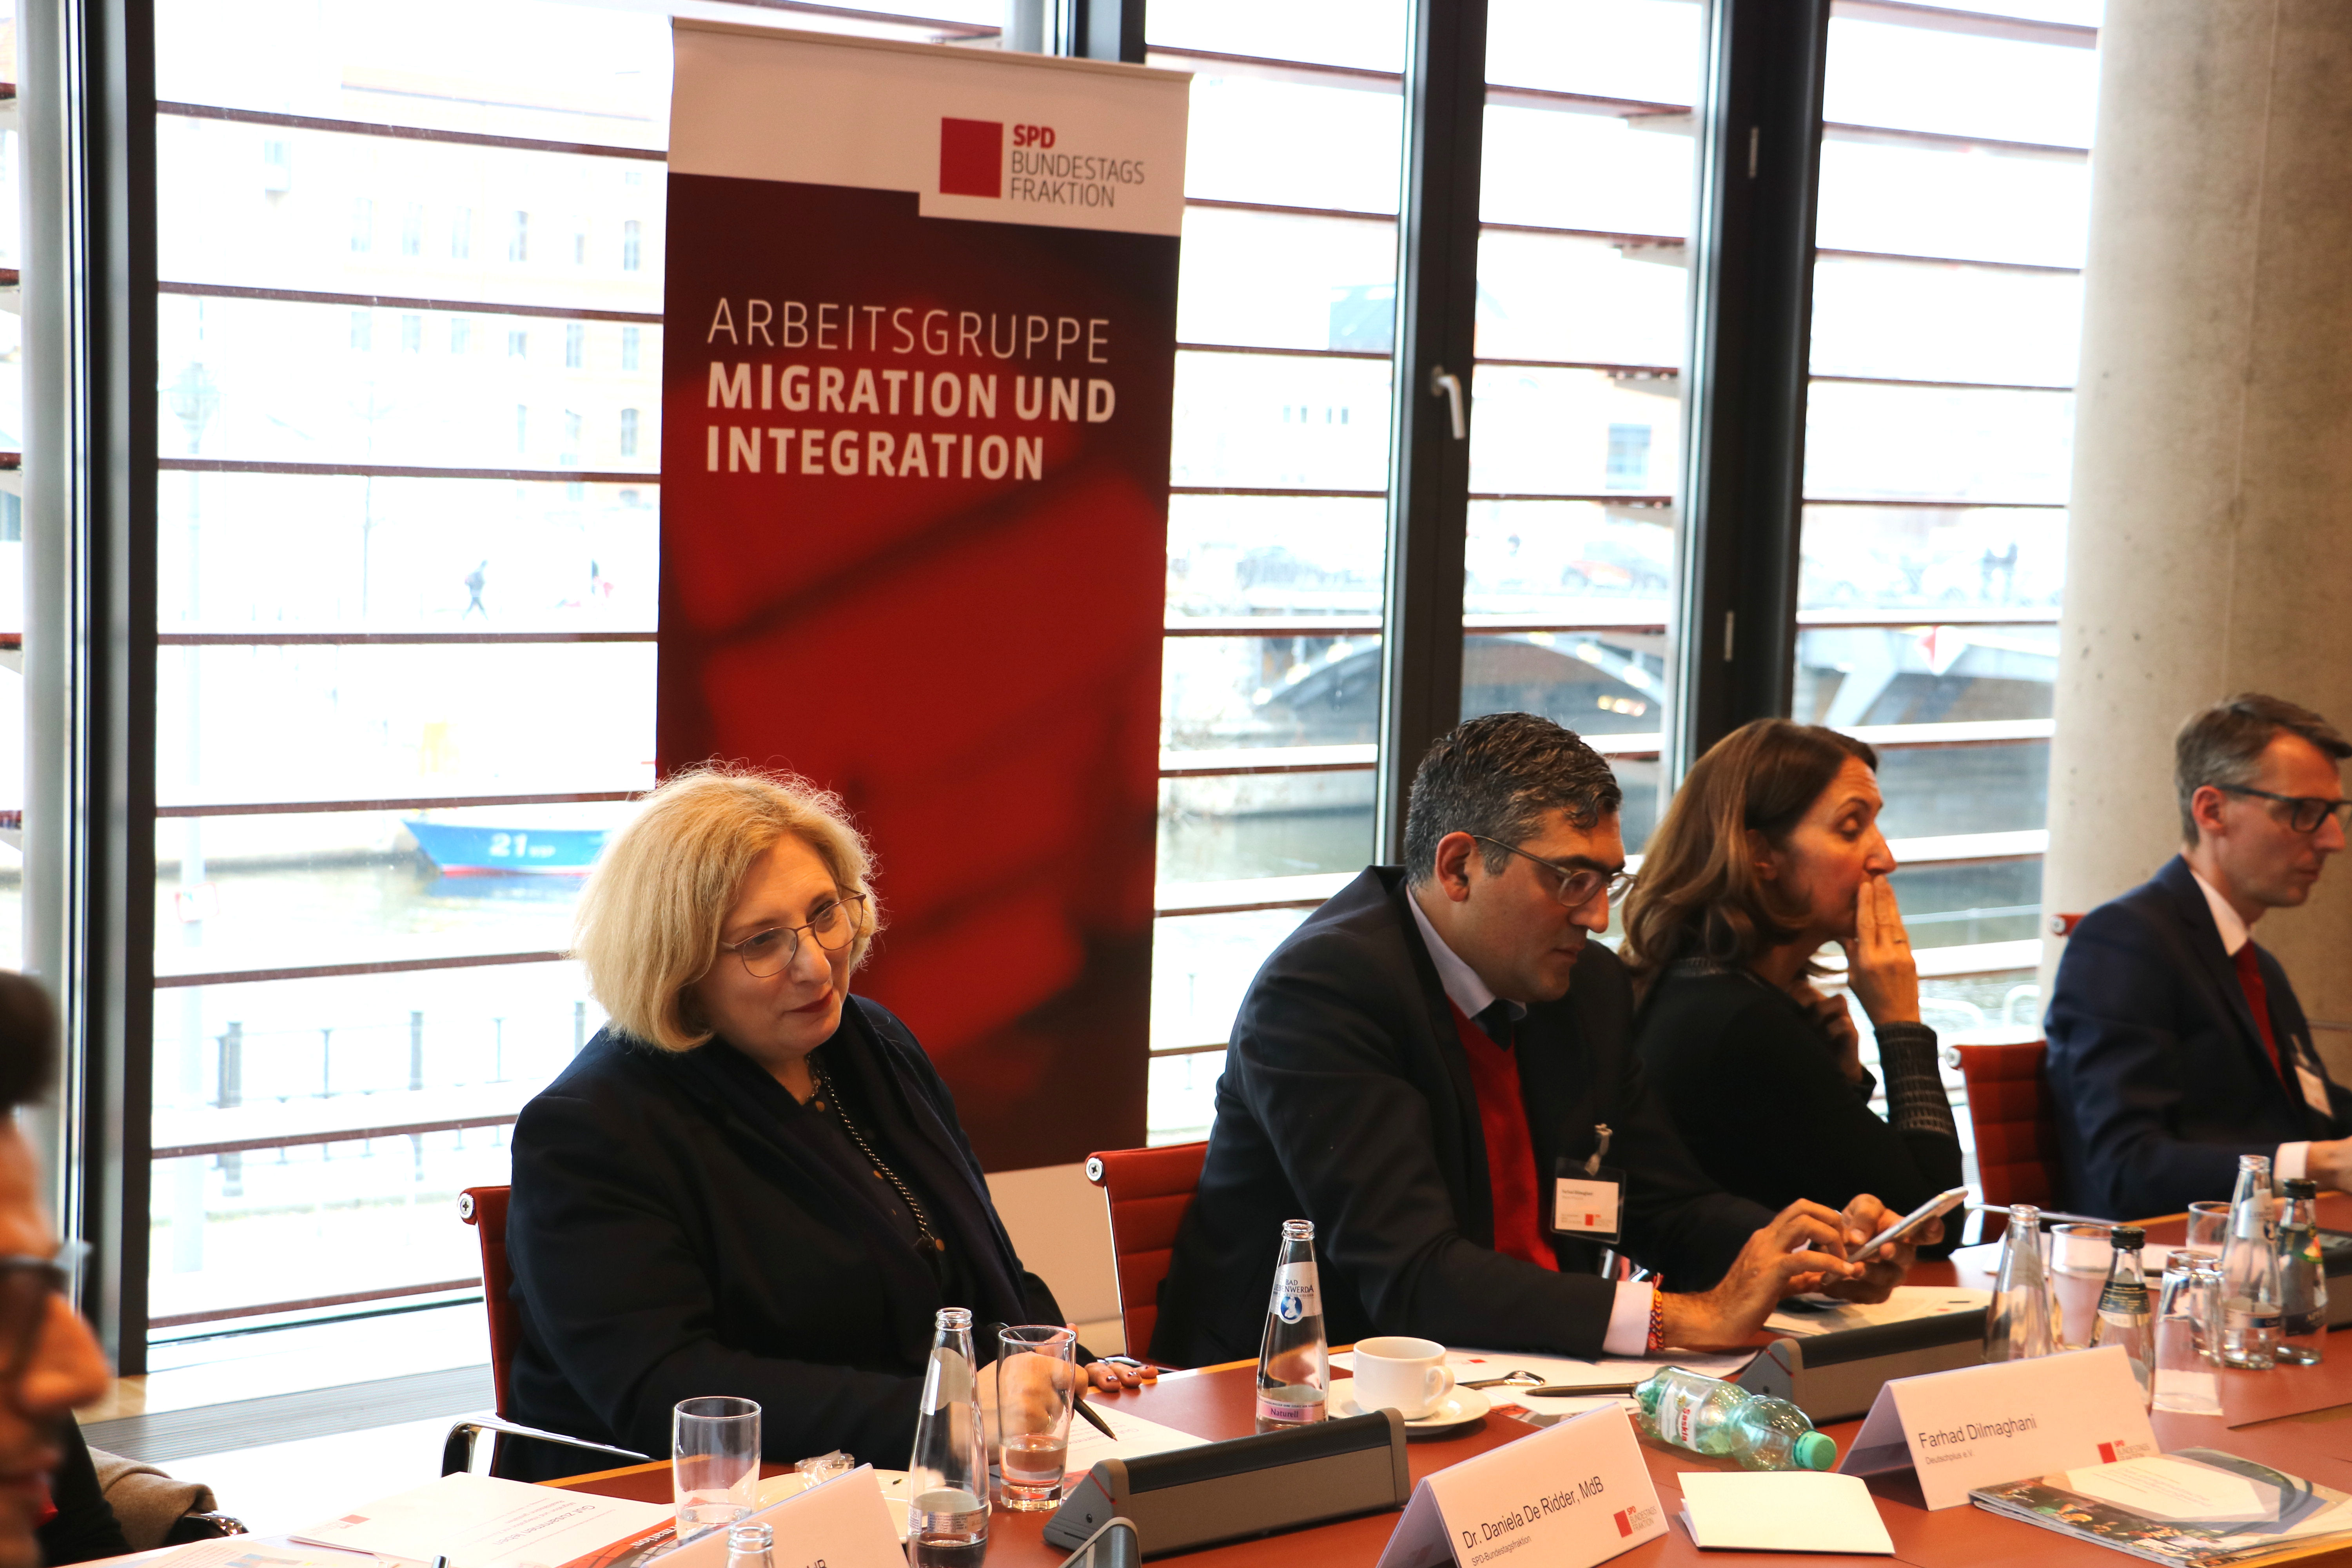 Dr. Daniela De Ridder beim Forum der AG Migration und Integration der SPD-Bundestagsfraktion